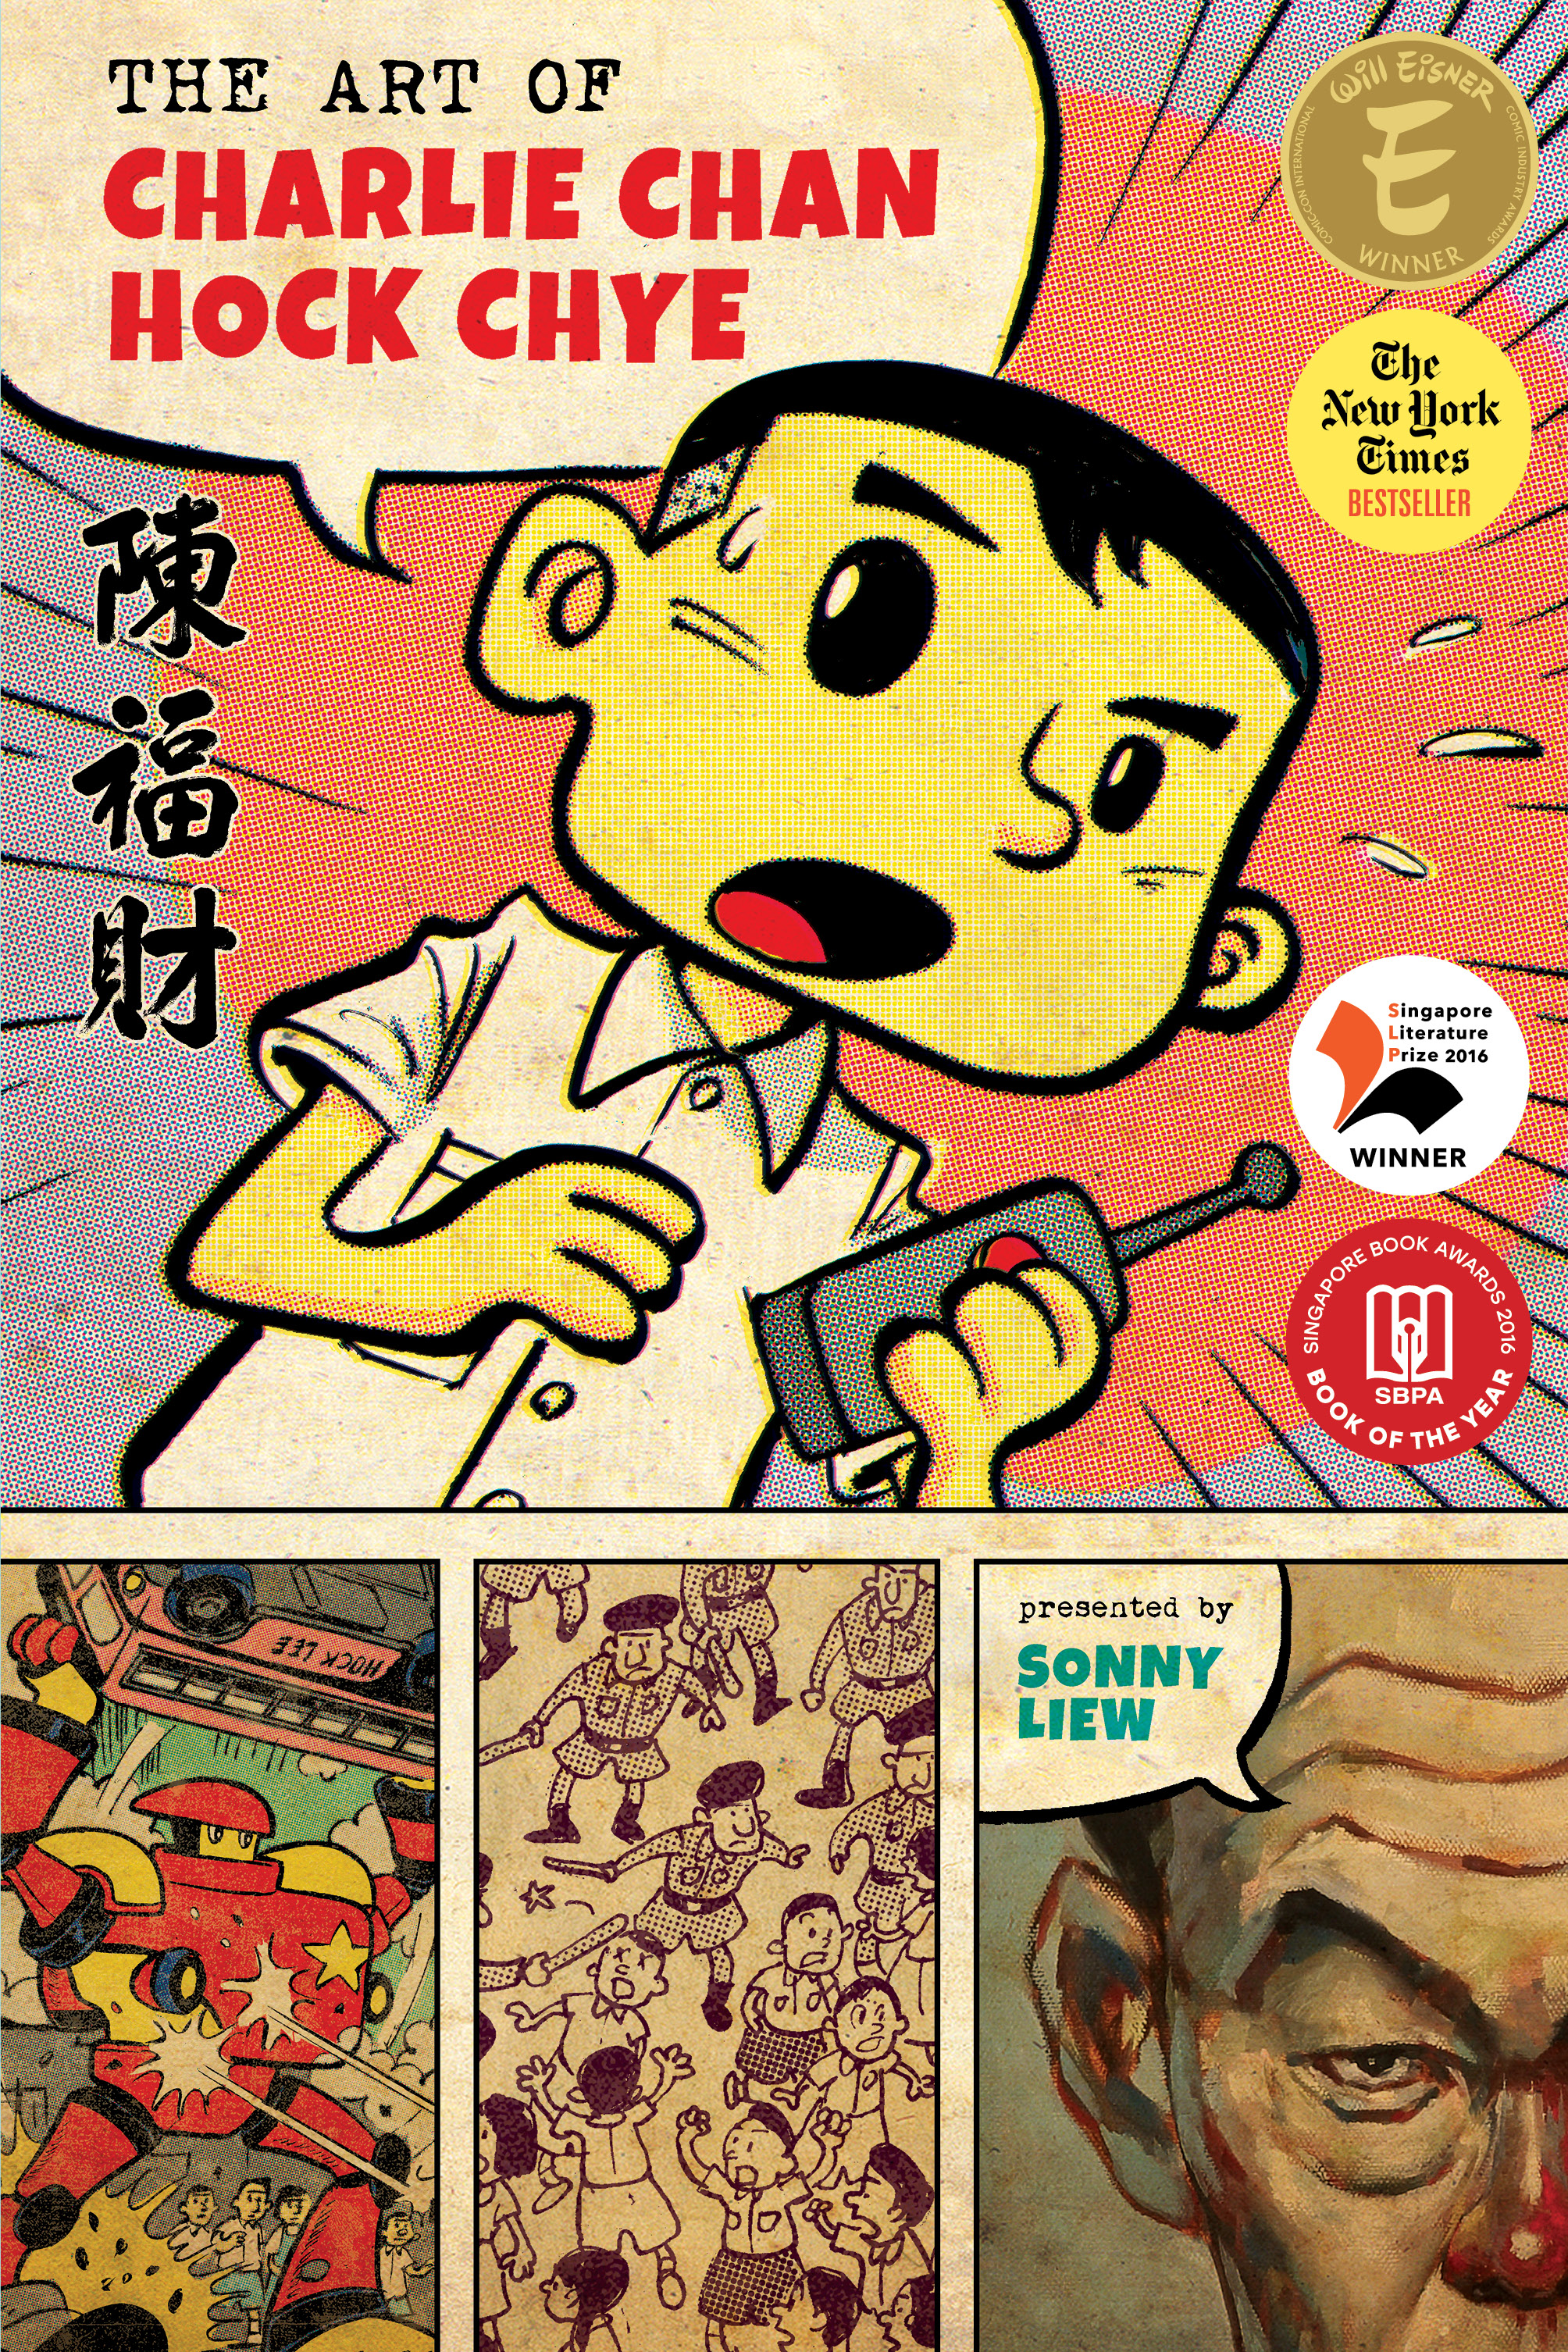 - THE ART OF CHARLIE CHAN HOCK CHYESonny LiewIn this brilliant retelling of the Singapore Story, Eisner Award-winning graphic novelist Sonny Liew blurs the lines between reality and fiction as he traces Charlie Chan's life in Singapore, before and after  it becomes the hyper-modern metropolis and island city-state. With a dazzling array of genres, styles and forms, The Art of Charlie Chan is  an exhilarating, funny and moving tale that pushes the boundaries of the comic book medium.£19.99Graphic novel978-191-20-9874-3March 2019ORDER THE BOOK HERE